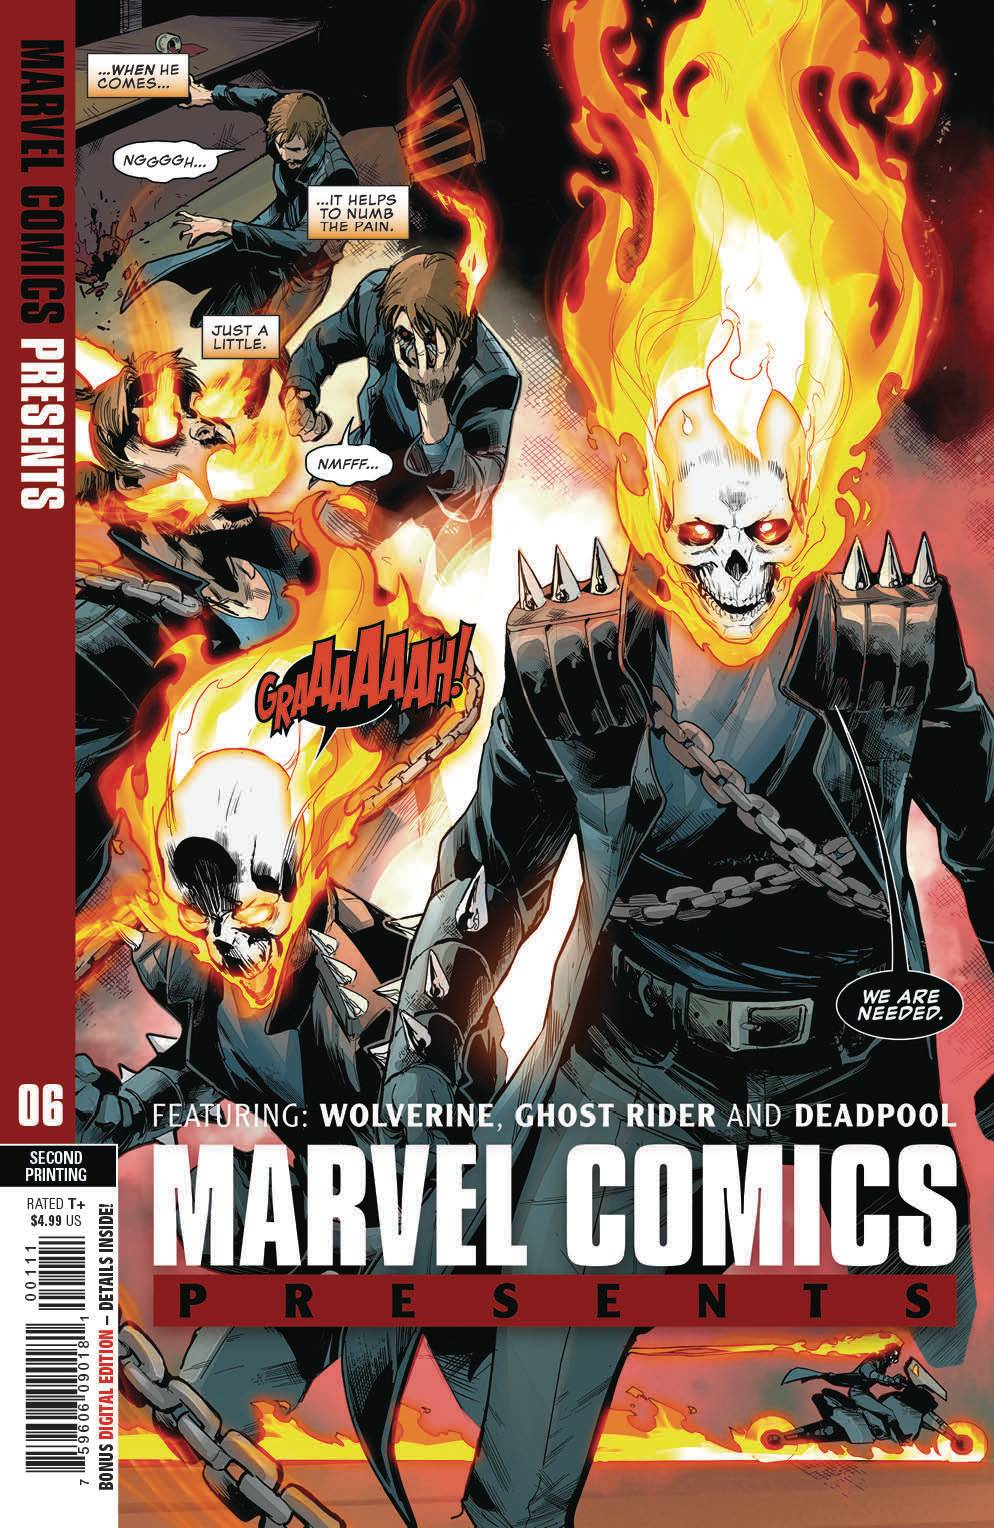 07/24/2019 MARVEL COMICS PRESENTS #6 2ND PRINT VARIANT